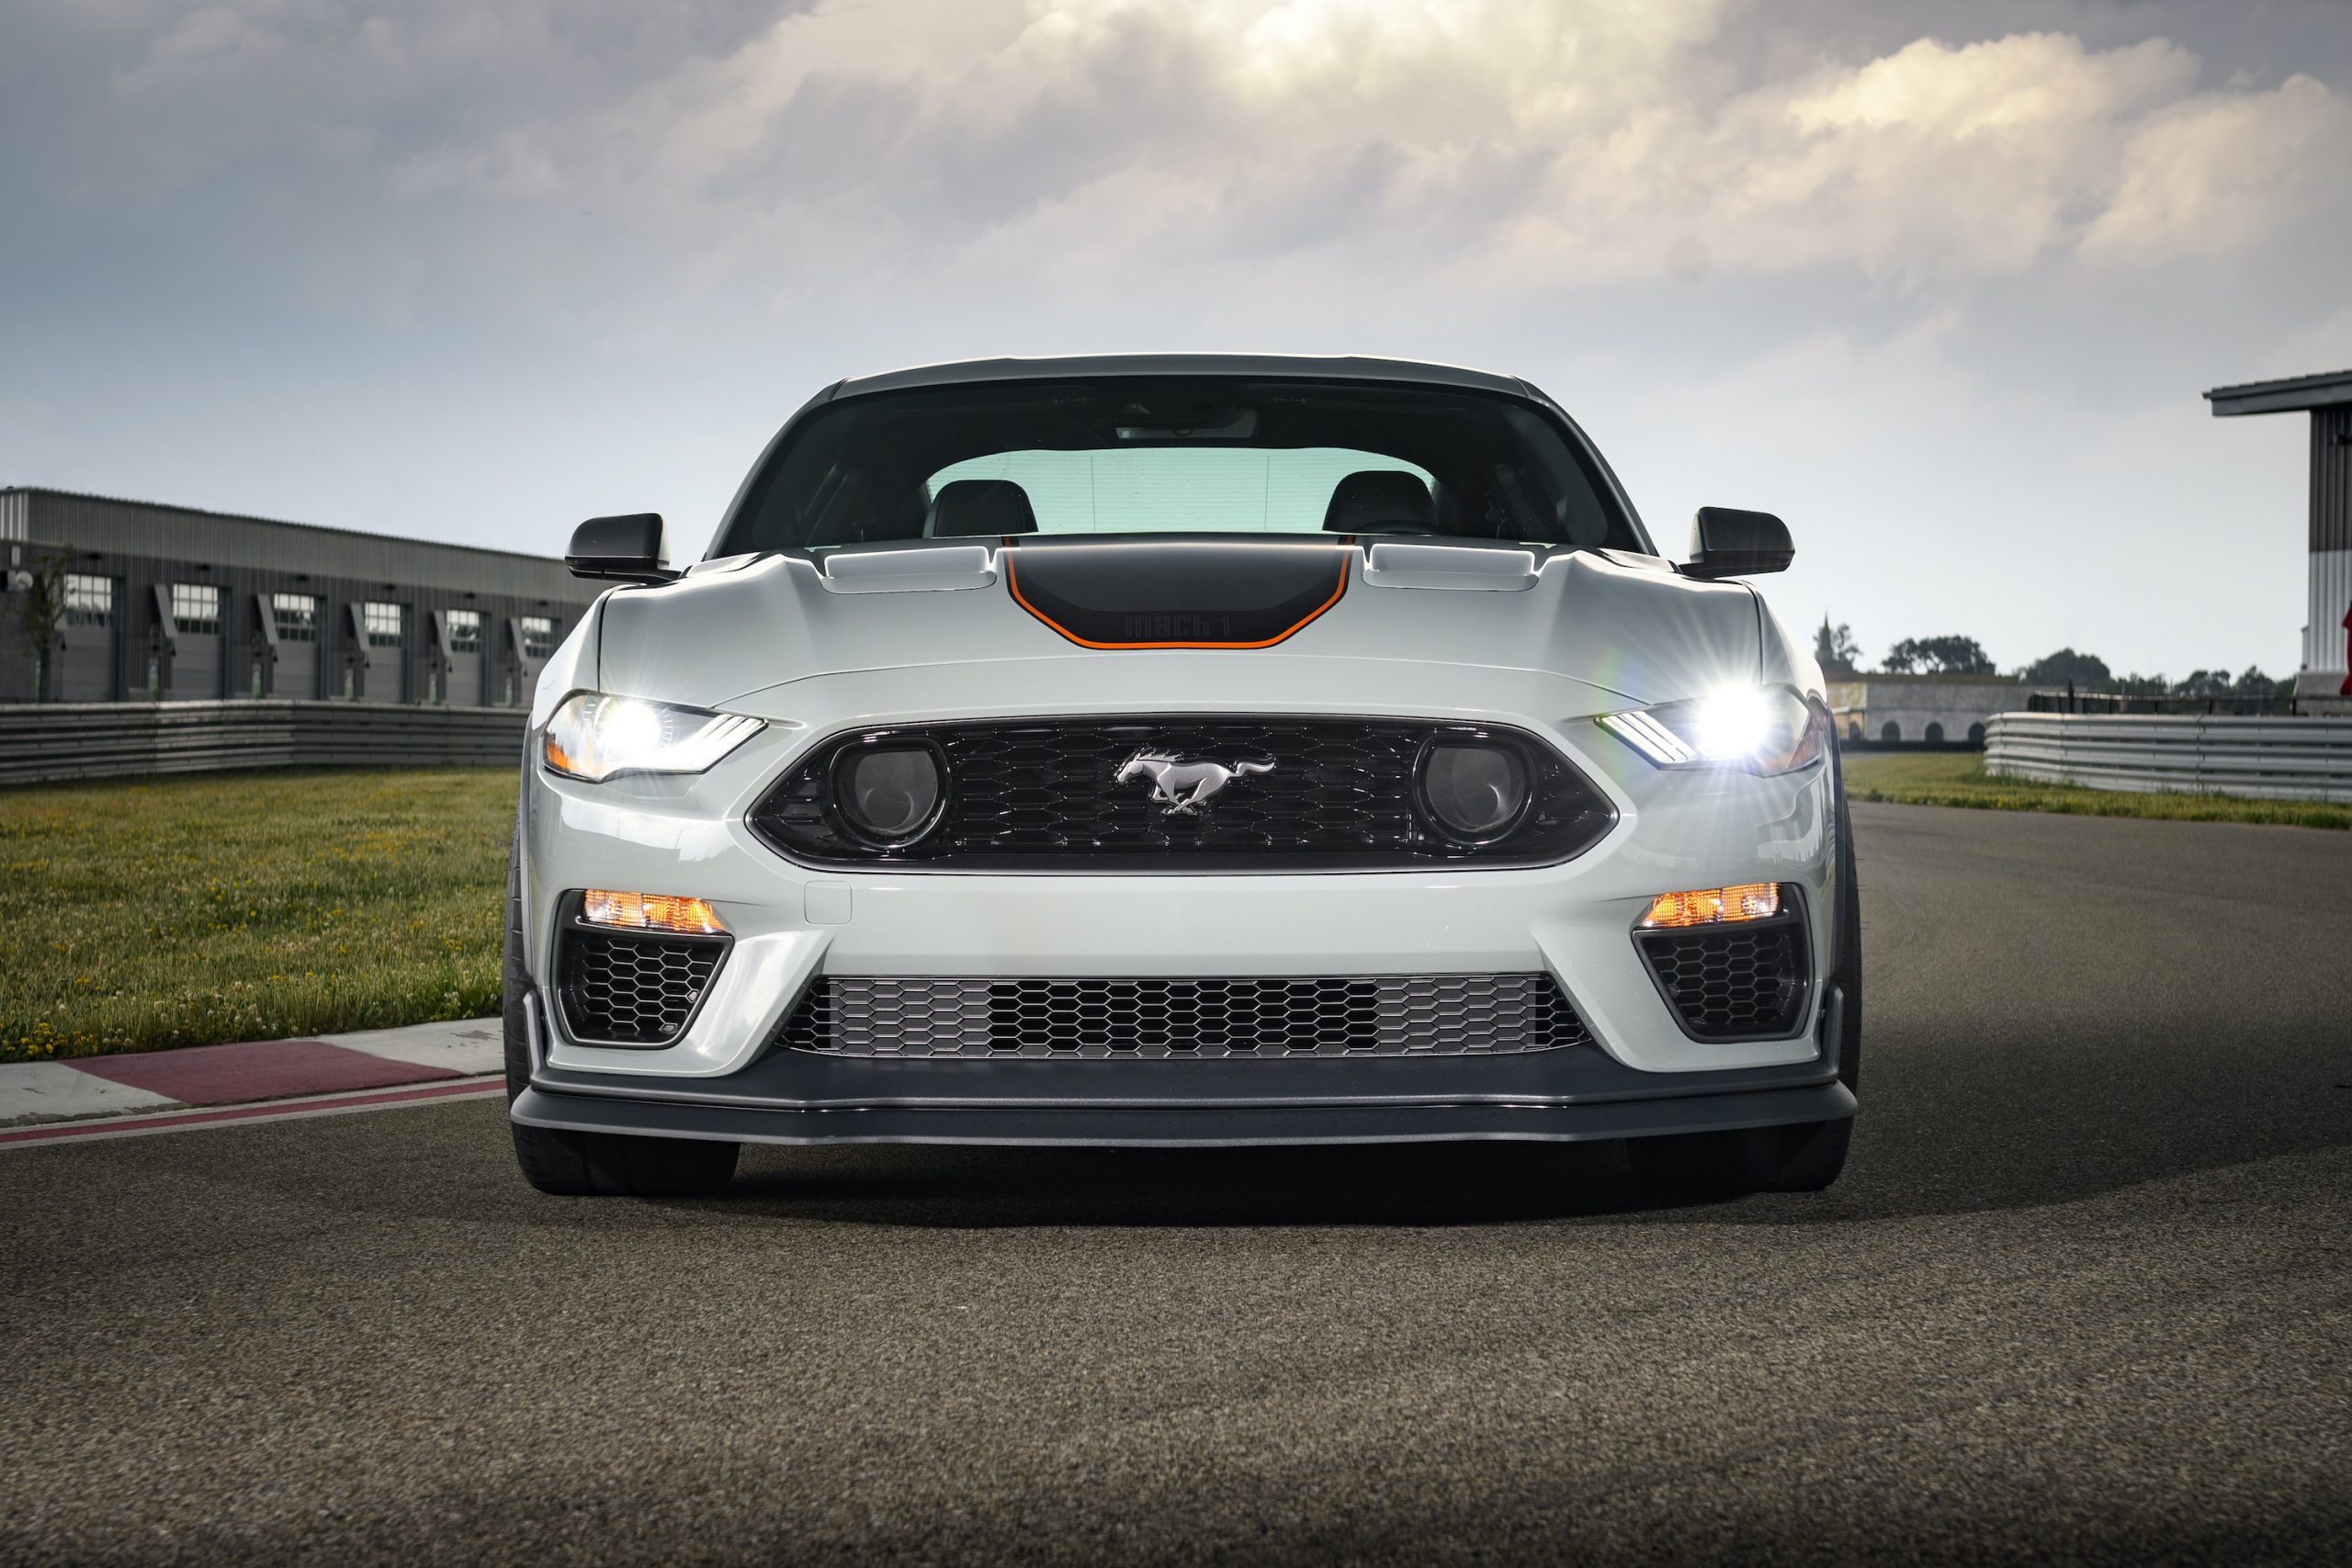 2021 Ford Mustang Mach 1 front